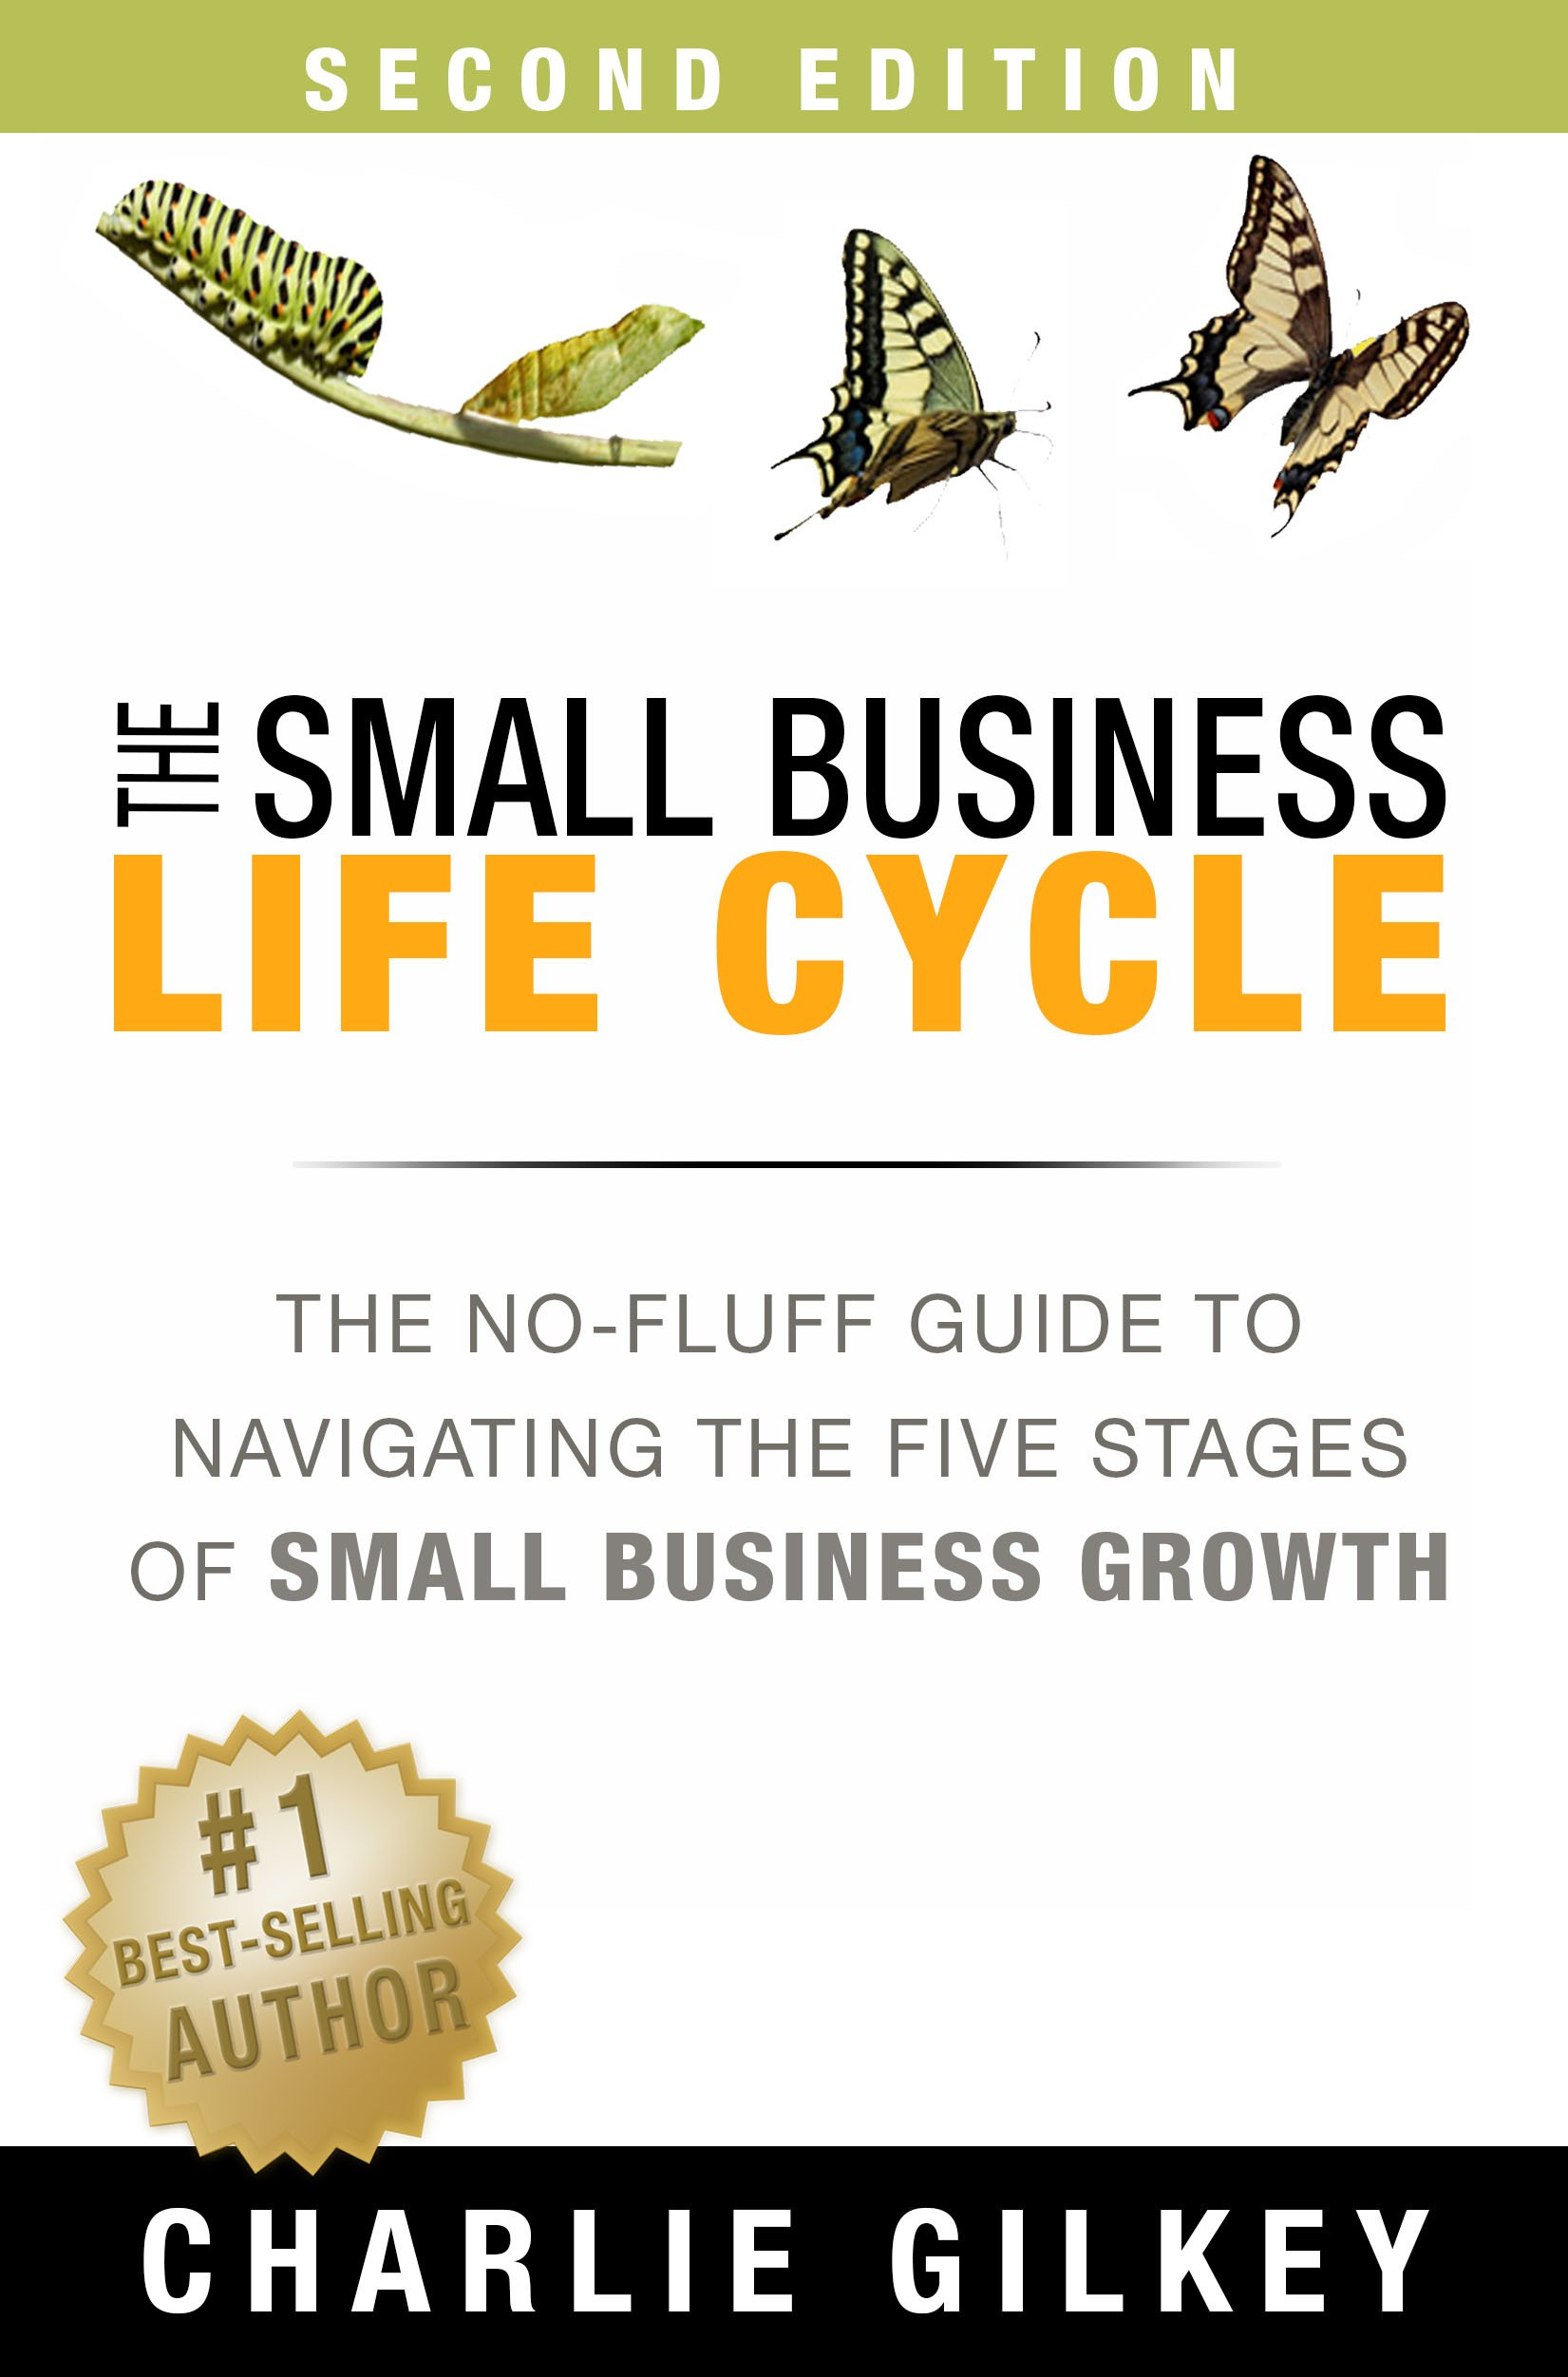 The Small Business Life Cycle: The No-Fluff Guide to Navigating the Five Stages of Small Business Growth